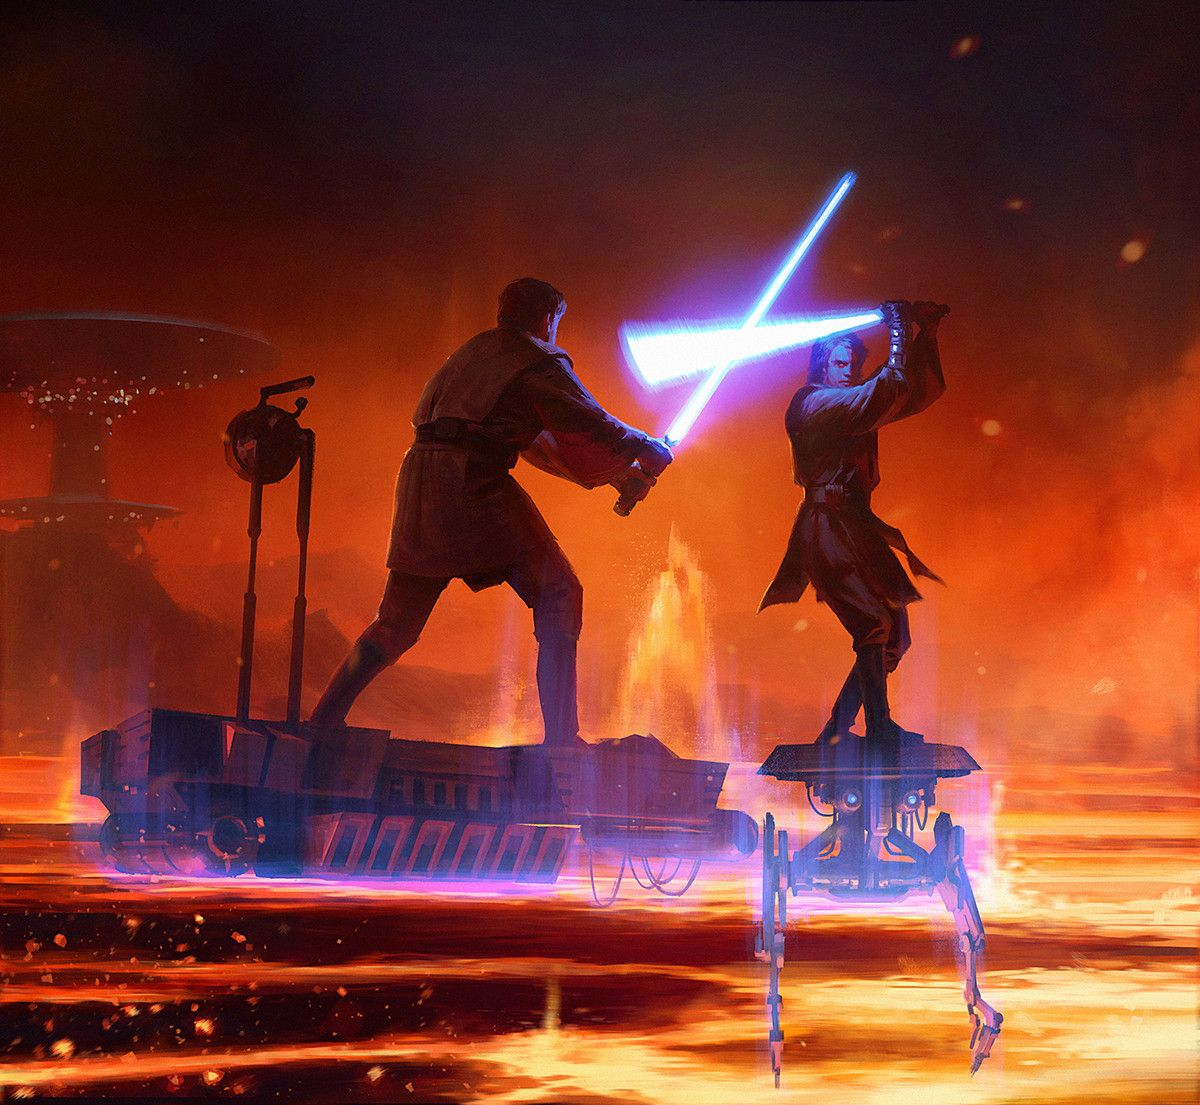 Artstation Sw Destiny Val You Were My Friend Darren Tan Star Wars Images Star Wars Pictures Star Wars Wallpaper